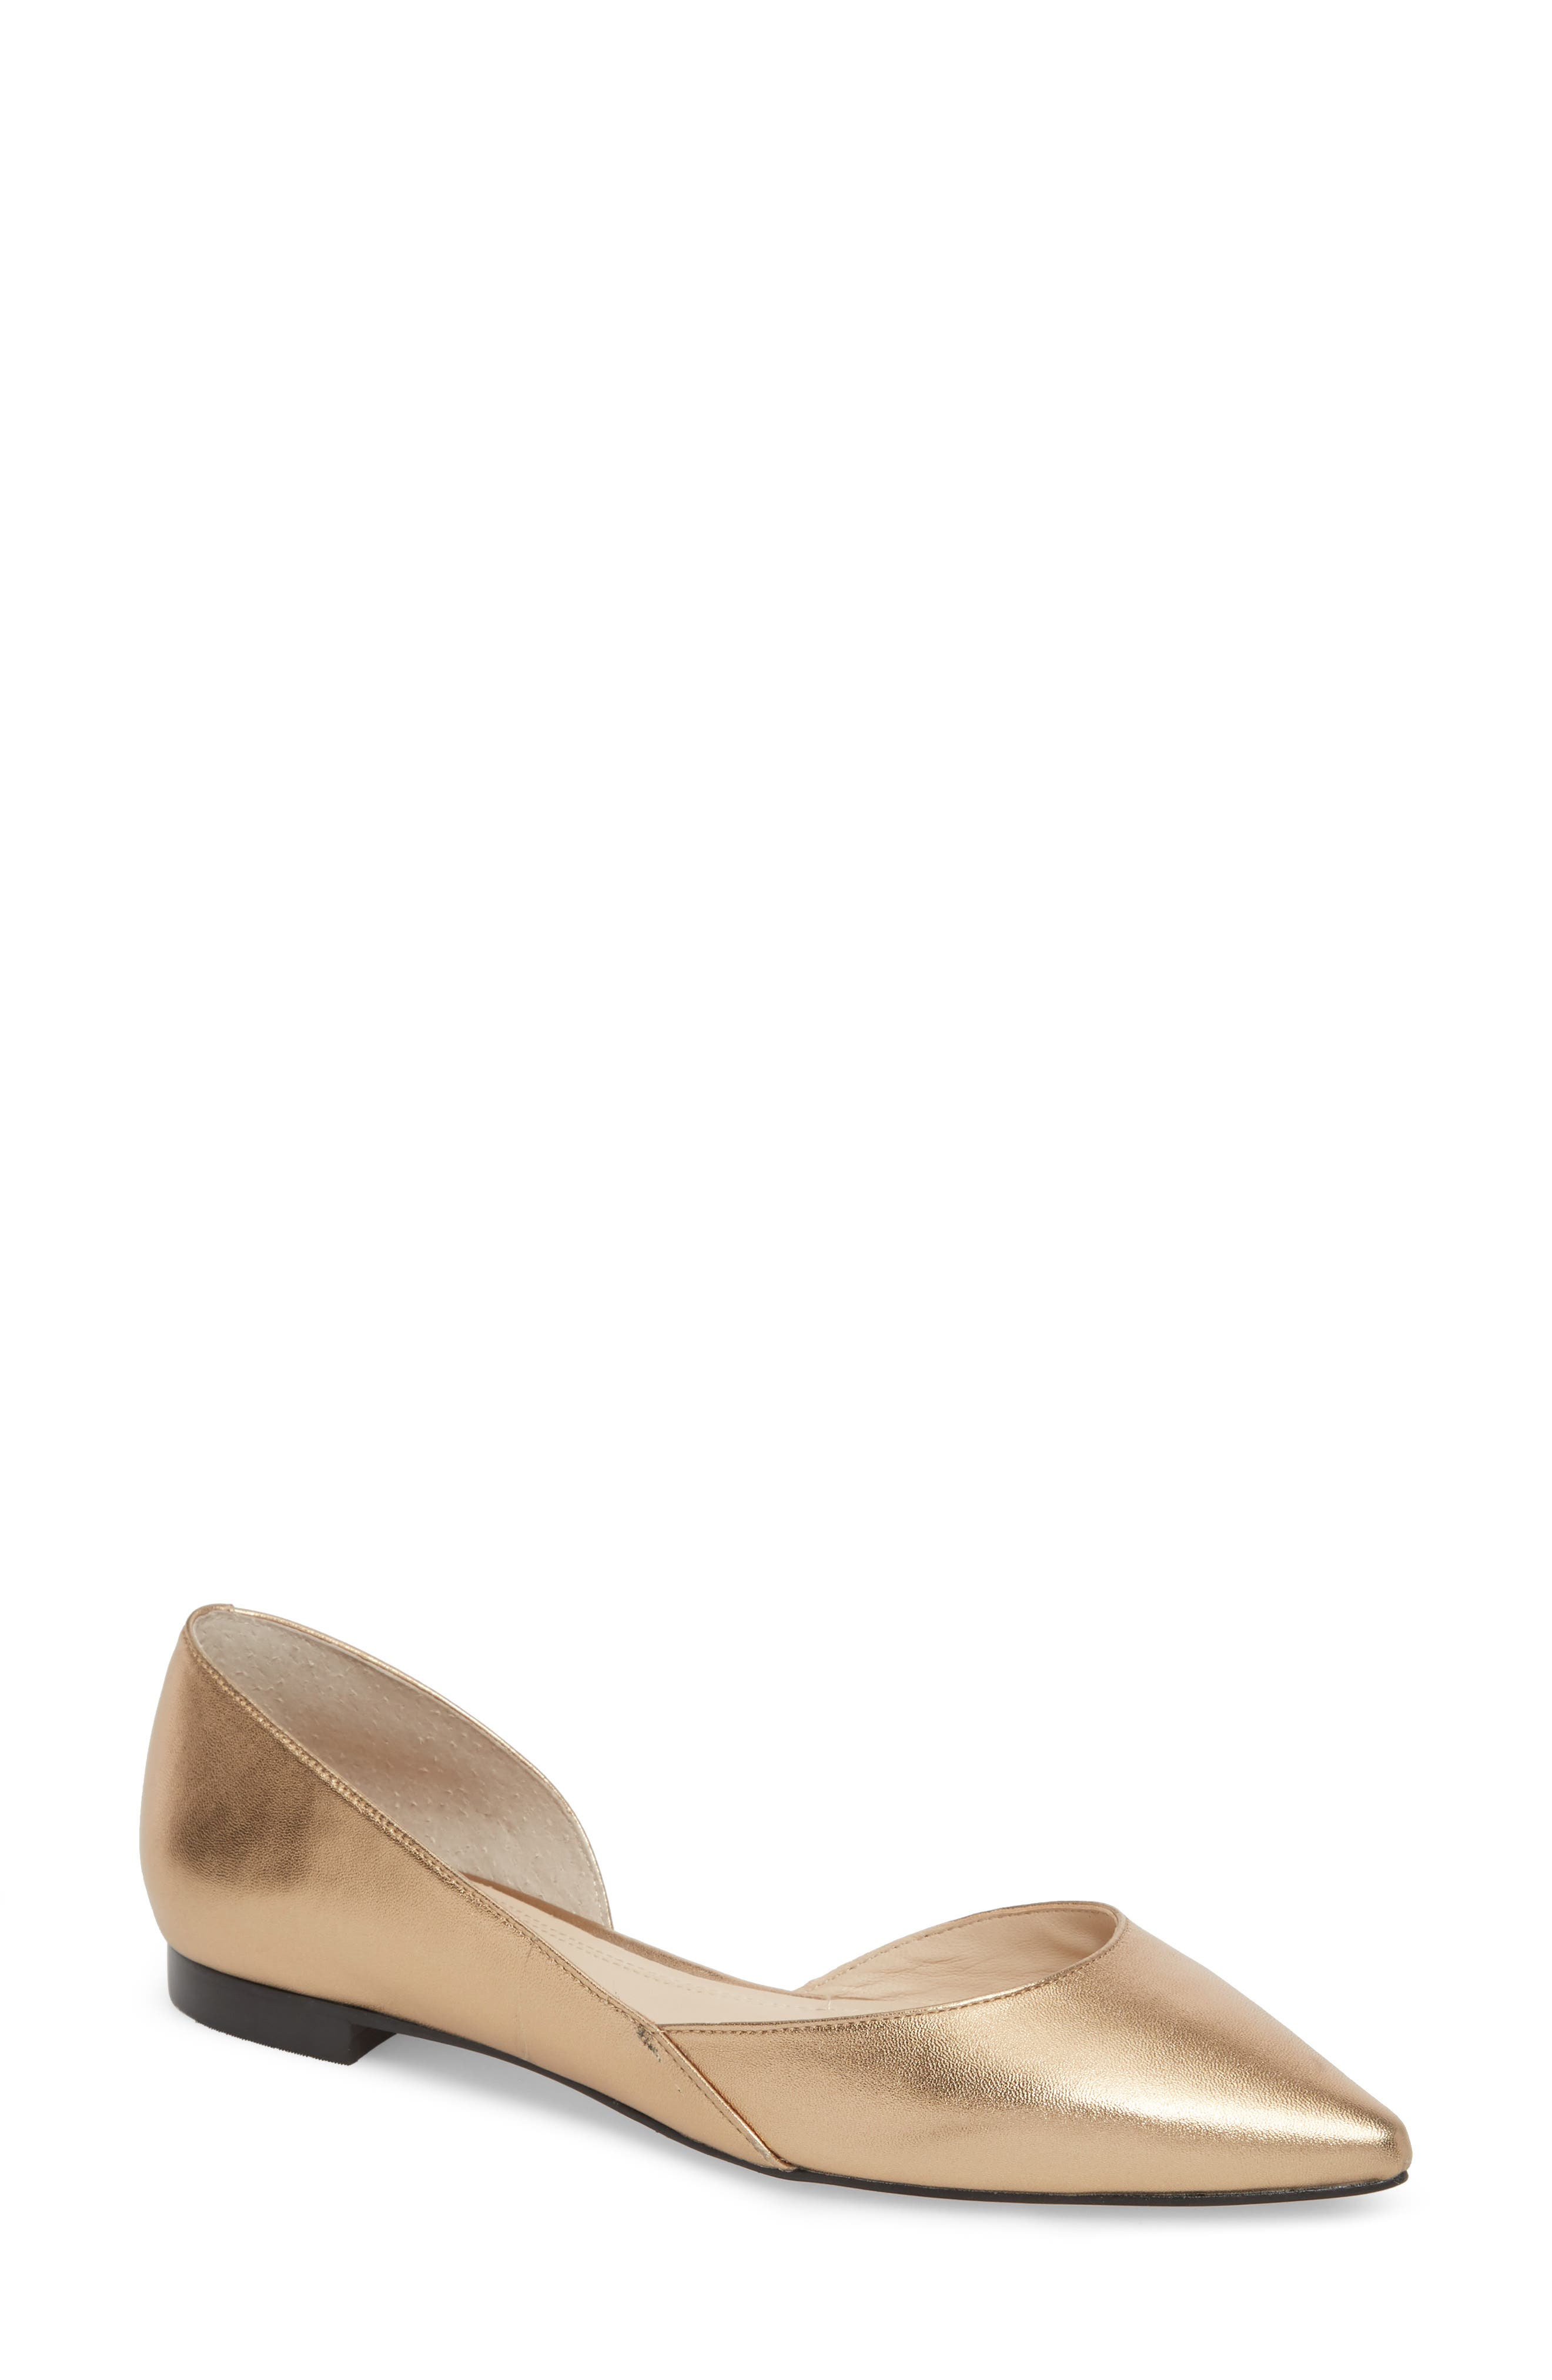 'Sunny' Half d'Orsay Flat,                             Main thumbnail 1, color,                             Gold Leather